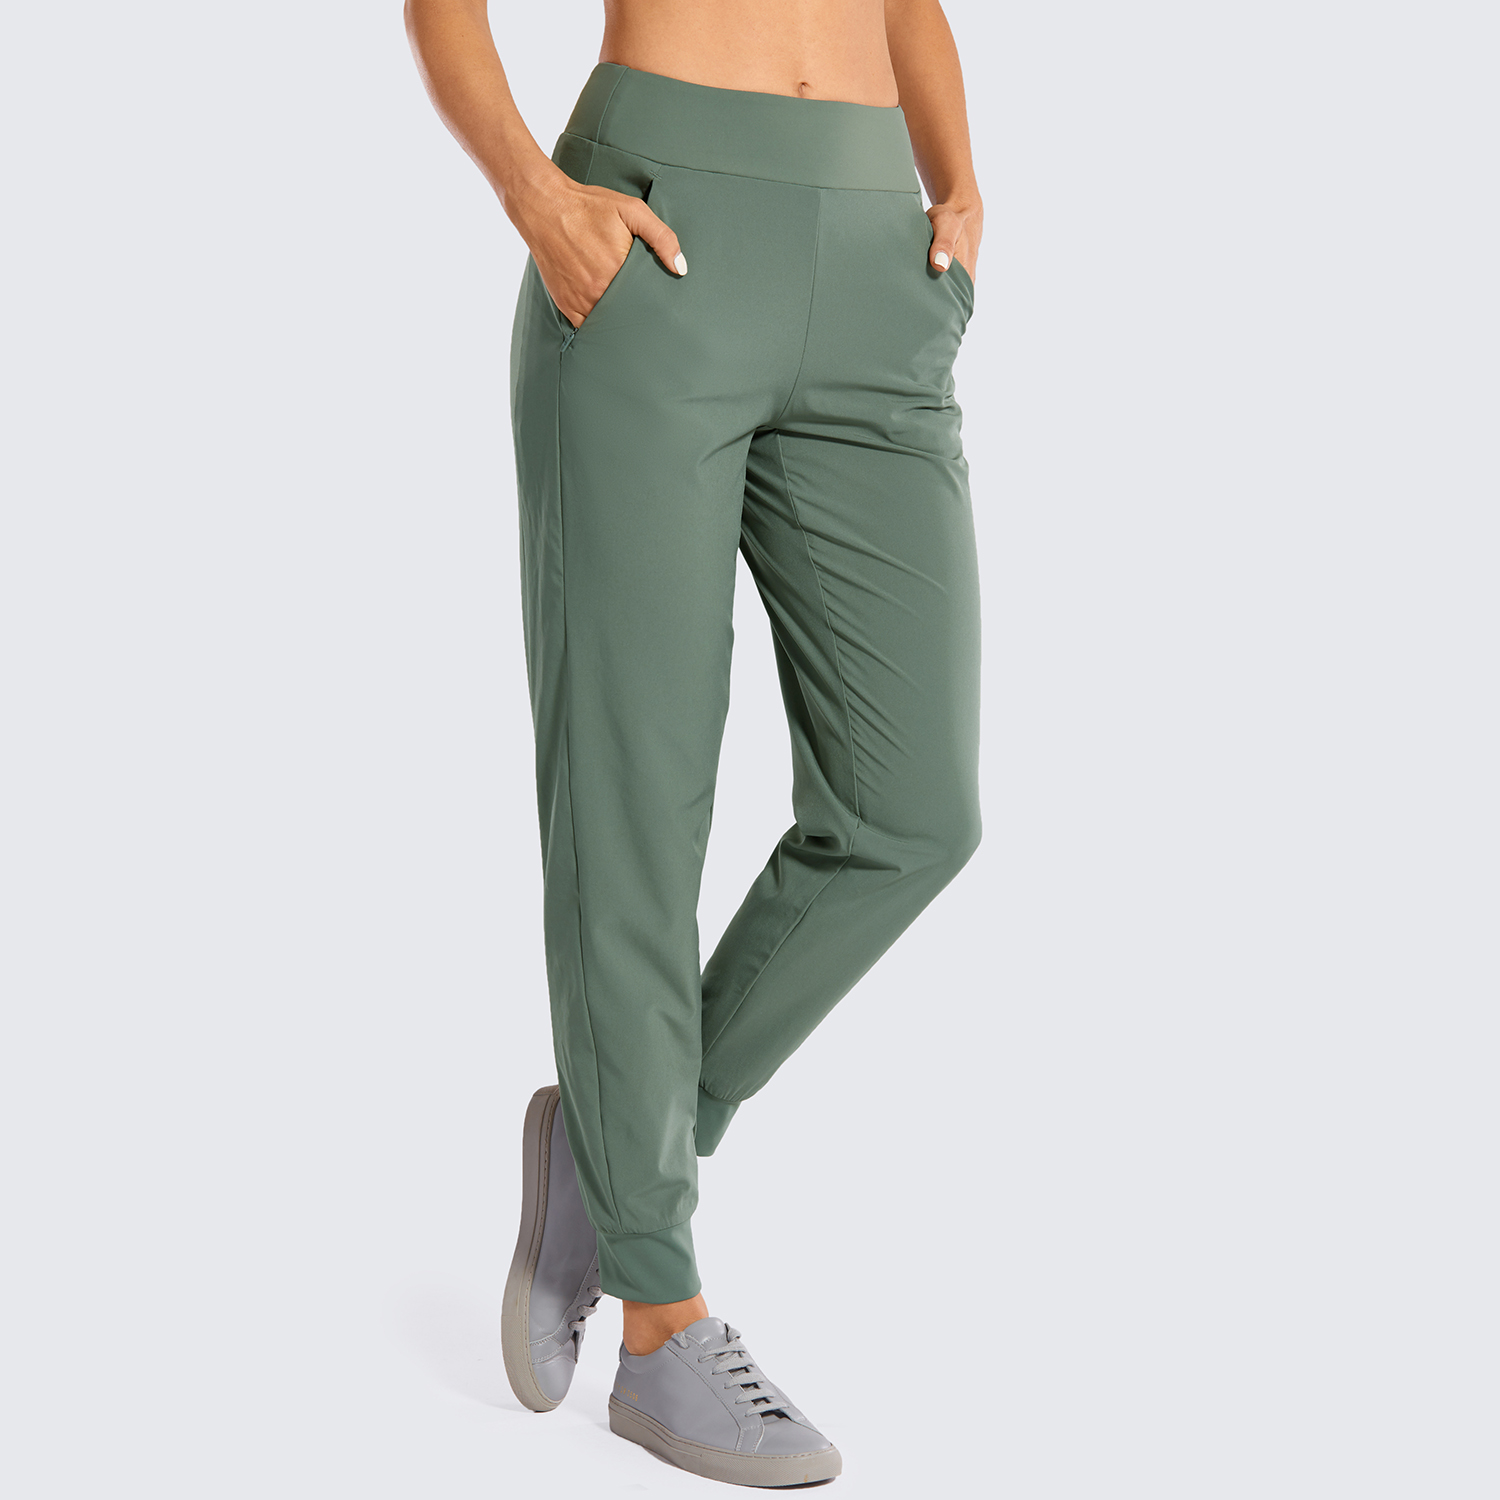 2020 Women's Double Layer Jogger Sweatpants